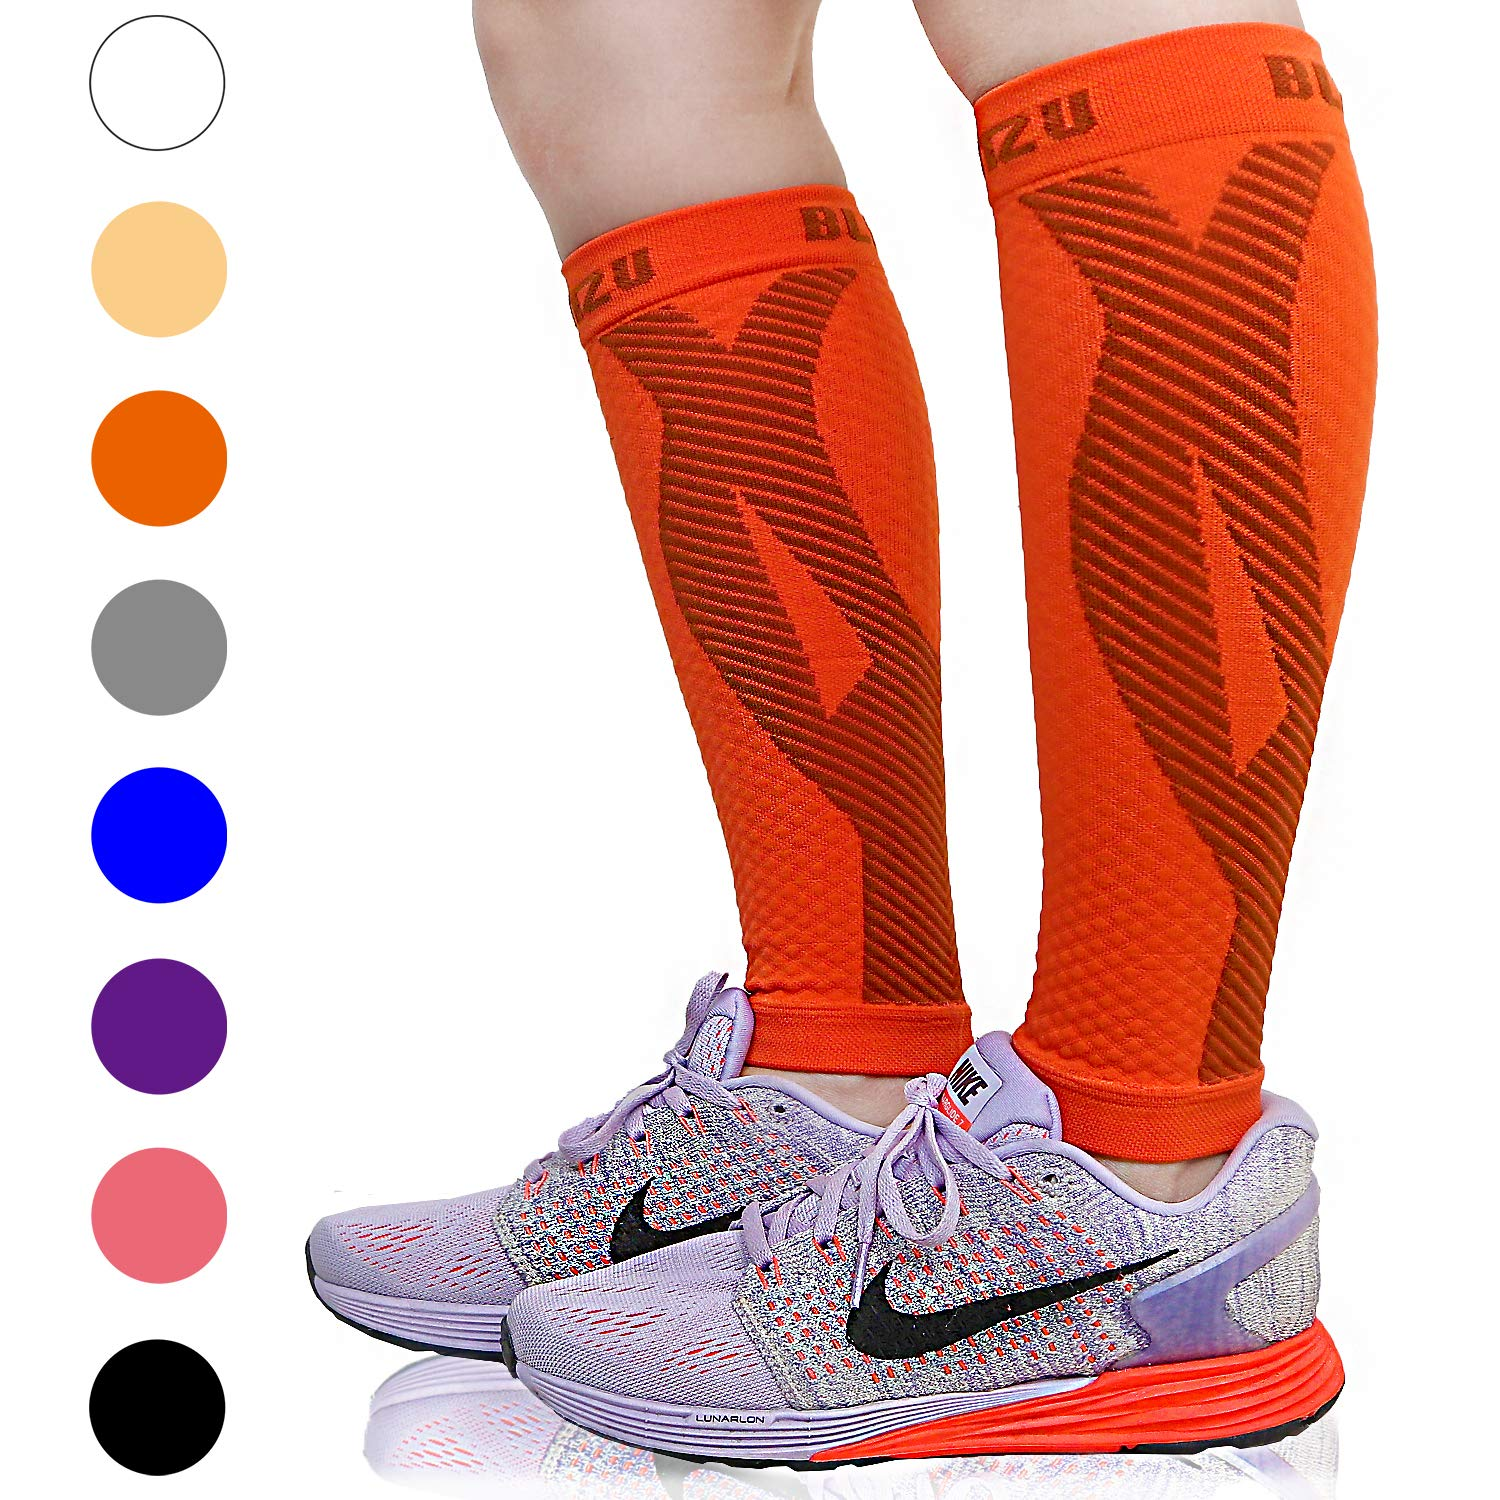 BLITZU Calf Compression Sleeve Leg Performance Support for Shin Splint & Calf Pain Relief. Men Women Runners Guards Sleeves for Running. Improves Circulation and Recovery (Tangerine, Large/X-Large) by BLITZU